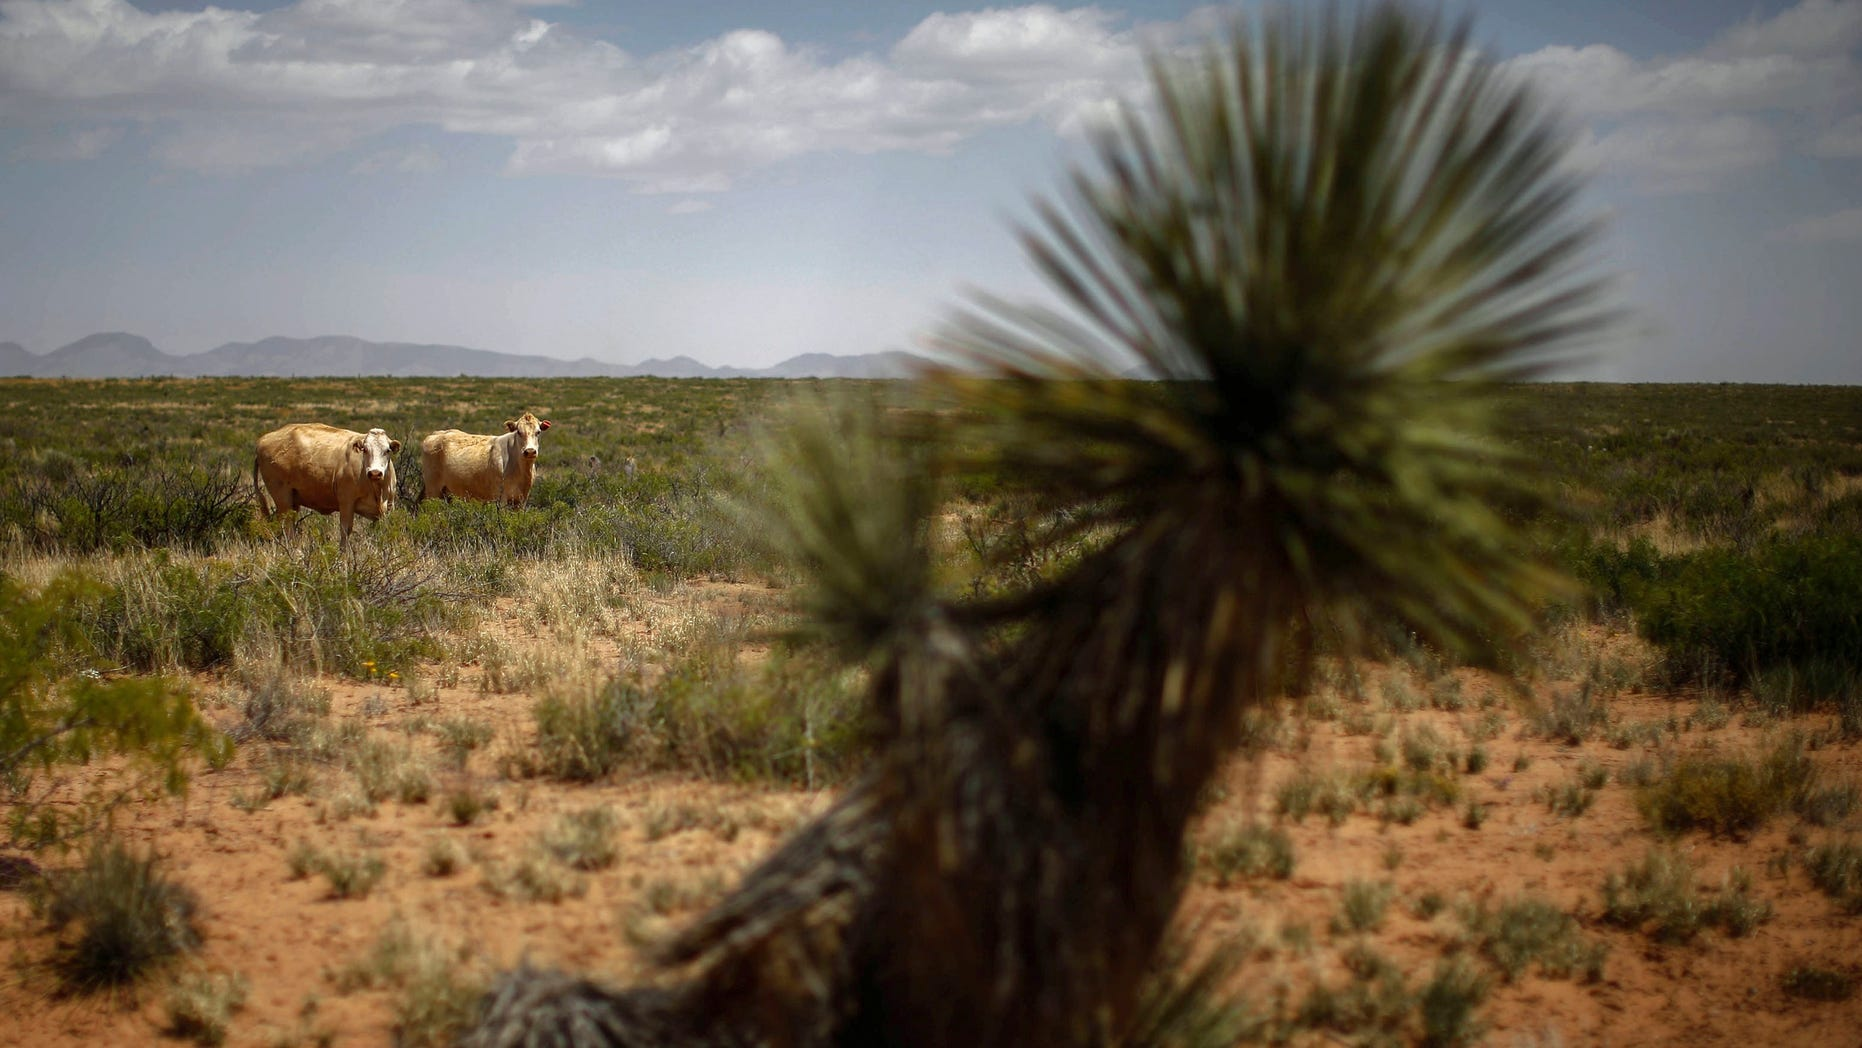 May 1, 2014: Cattle graze in a field outside Spaceport America near Truth or Consequences, New Mexico May 1, 2014.